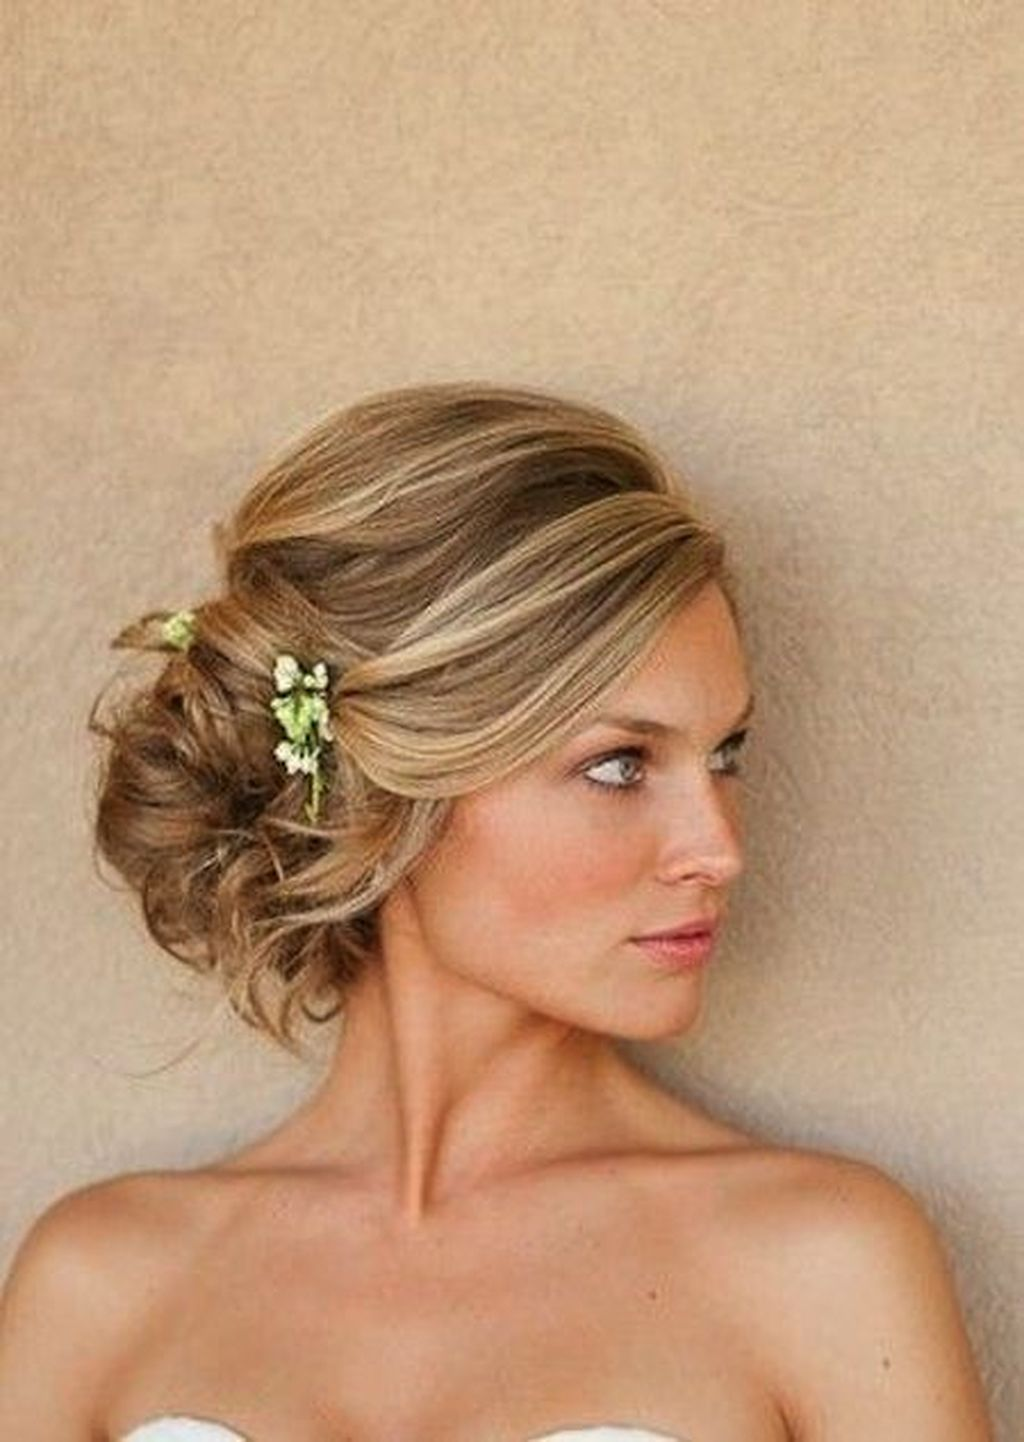 Amazing wedding hairstyles for medium hair ideas hair